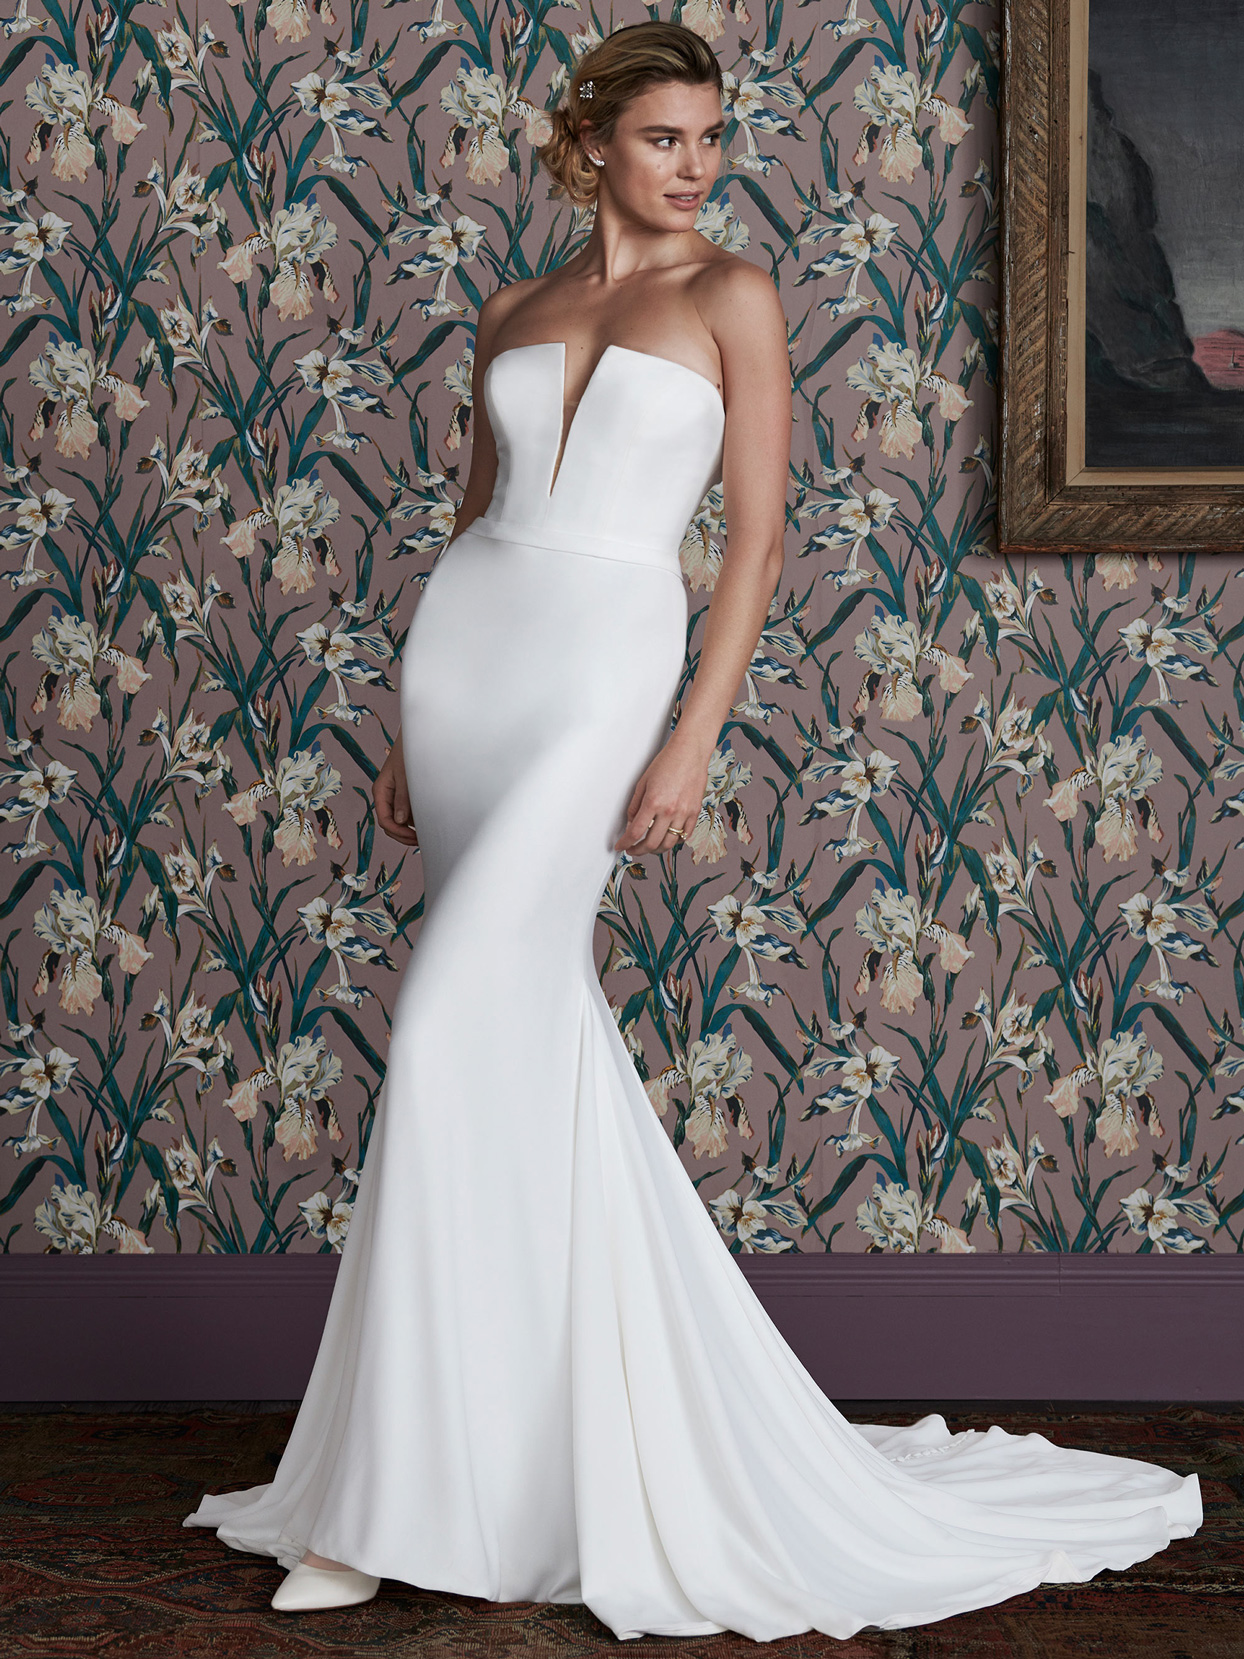 justin alexander strapless plunging v-neck wedding dress spring 2021